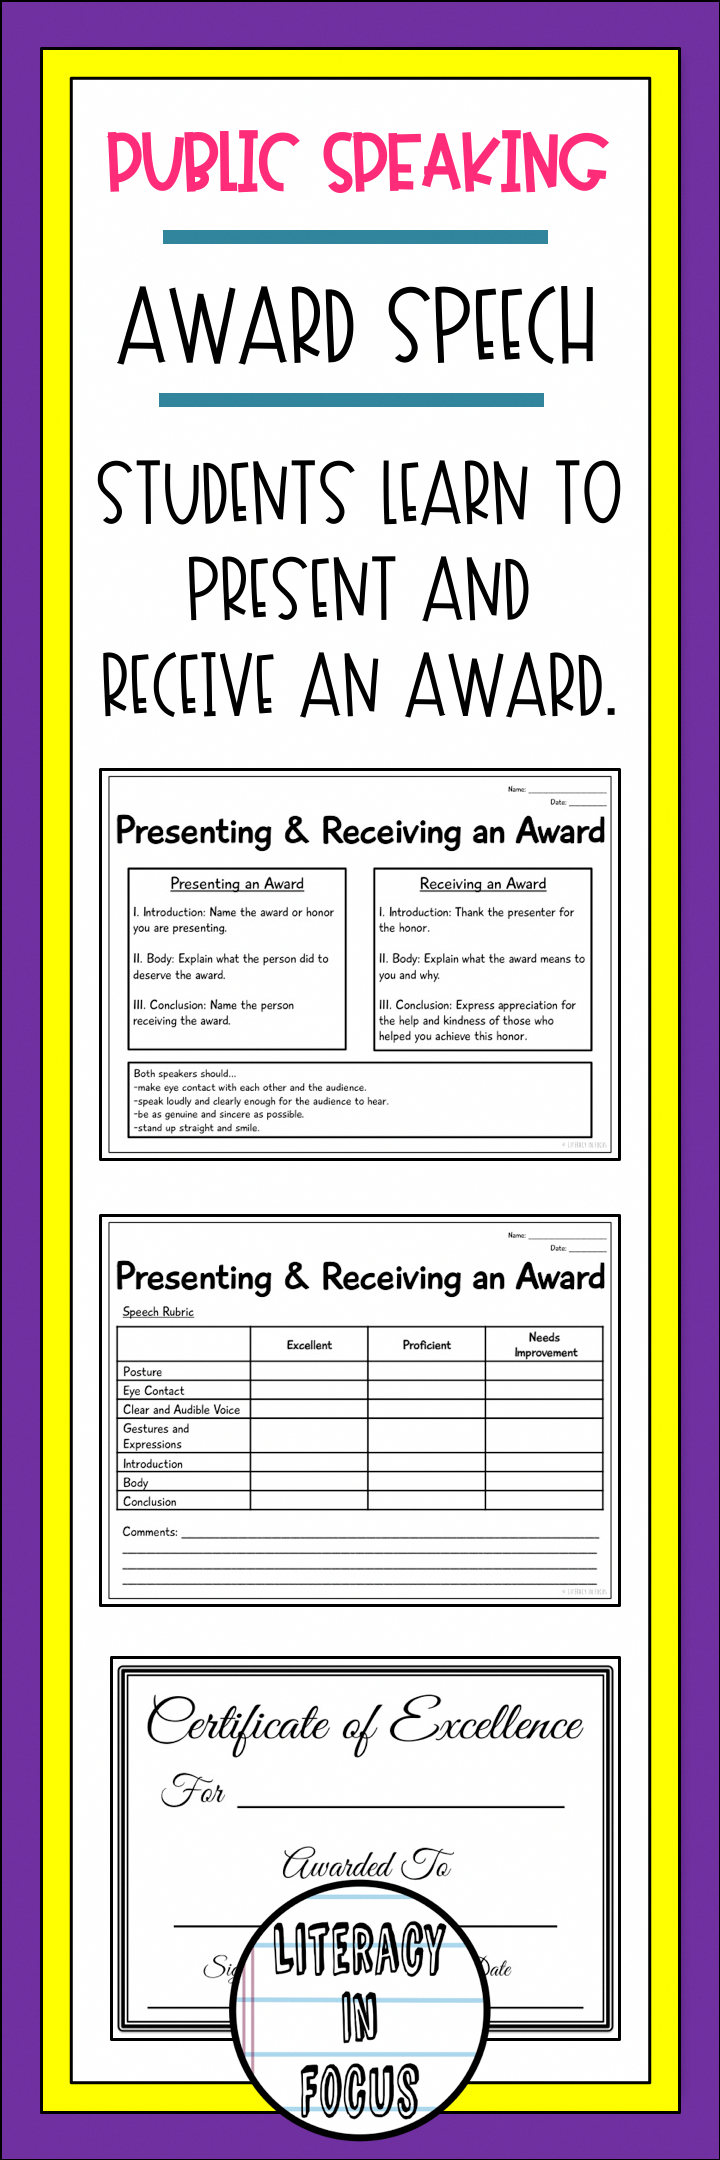 students learn how to appropriately present and receive an award